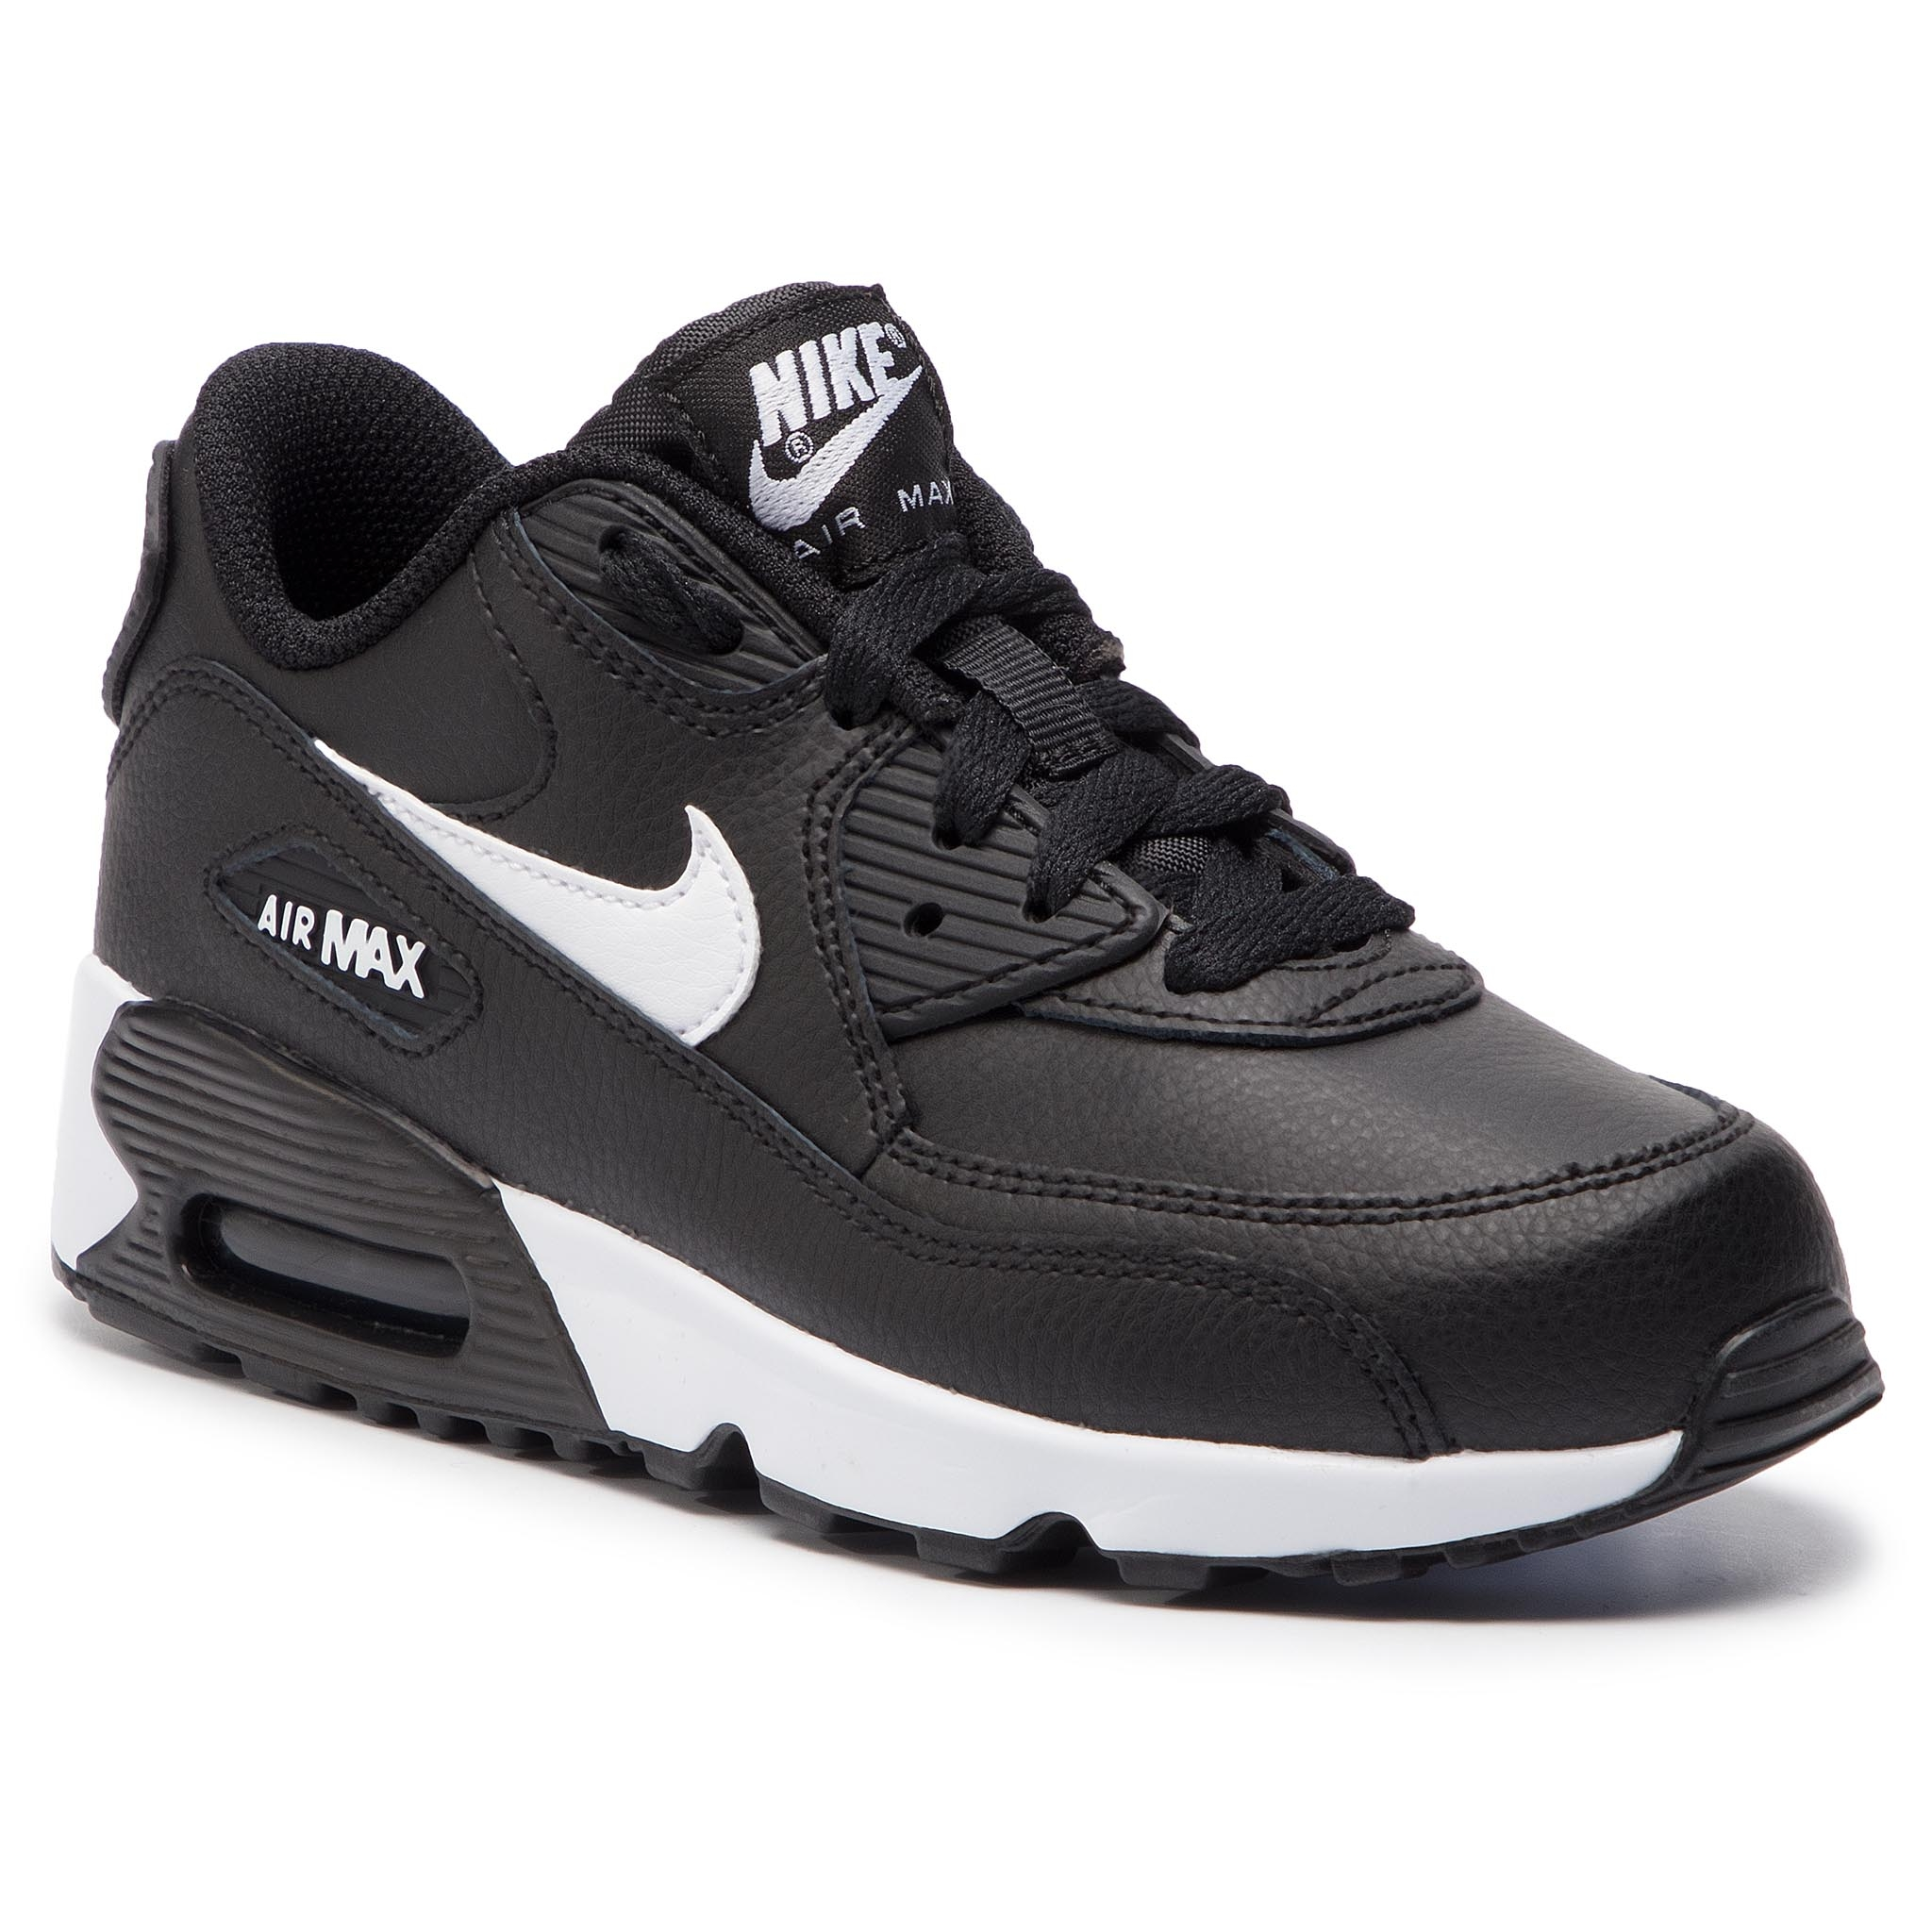 pretty nice 58934 ae5ba Shoes NIKE Air Max 90 Ltr (PS) 833414 025 Black White Anthracite